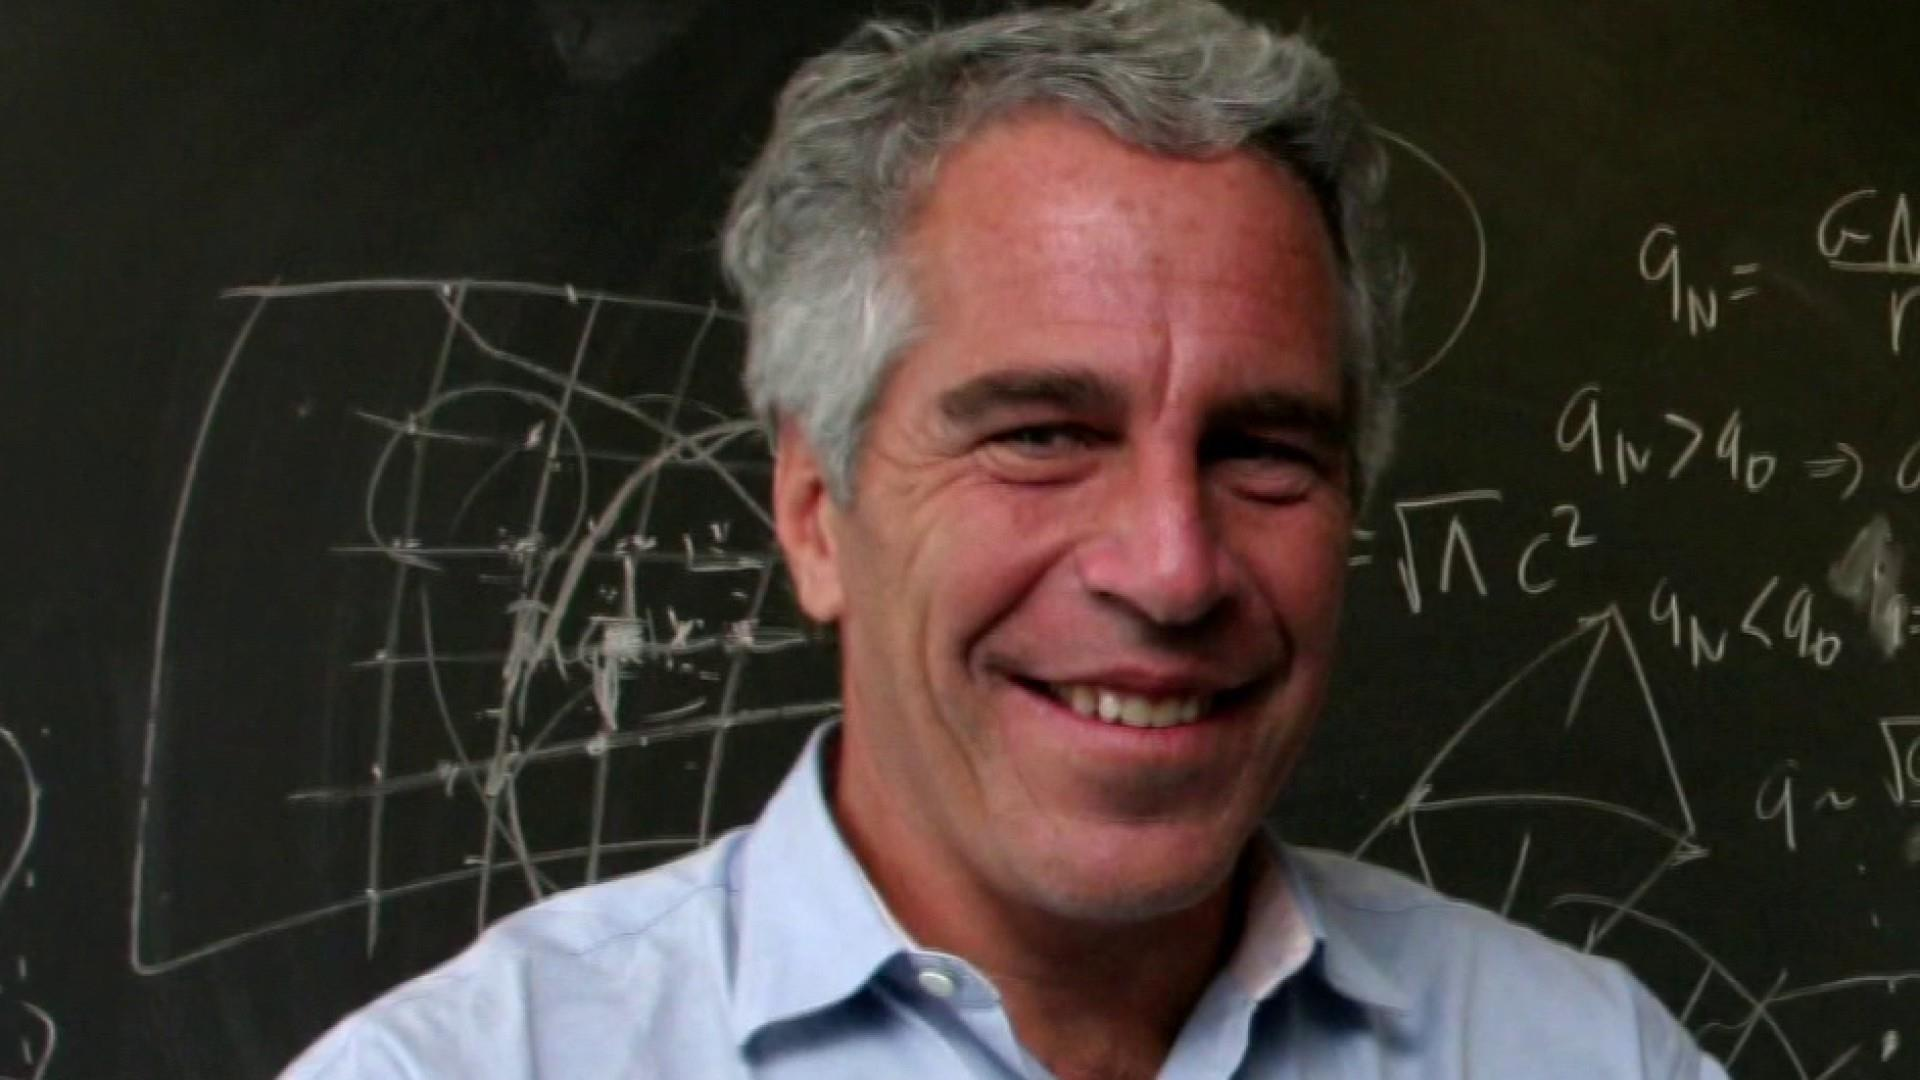 WSJ: Epstein's business relationships sometimes turned sour